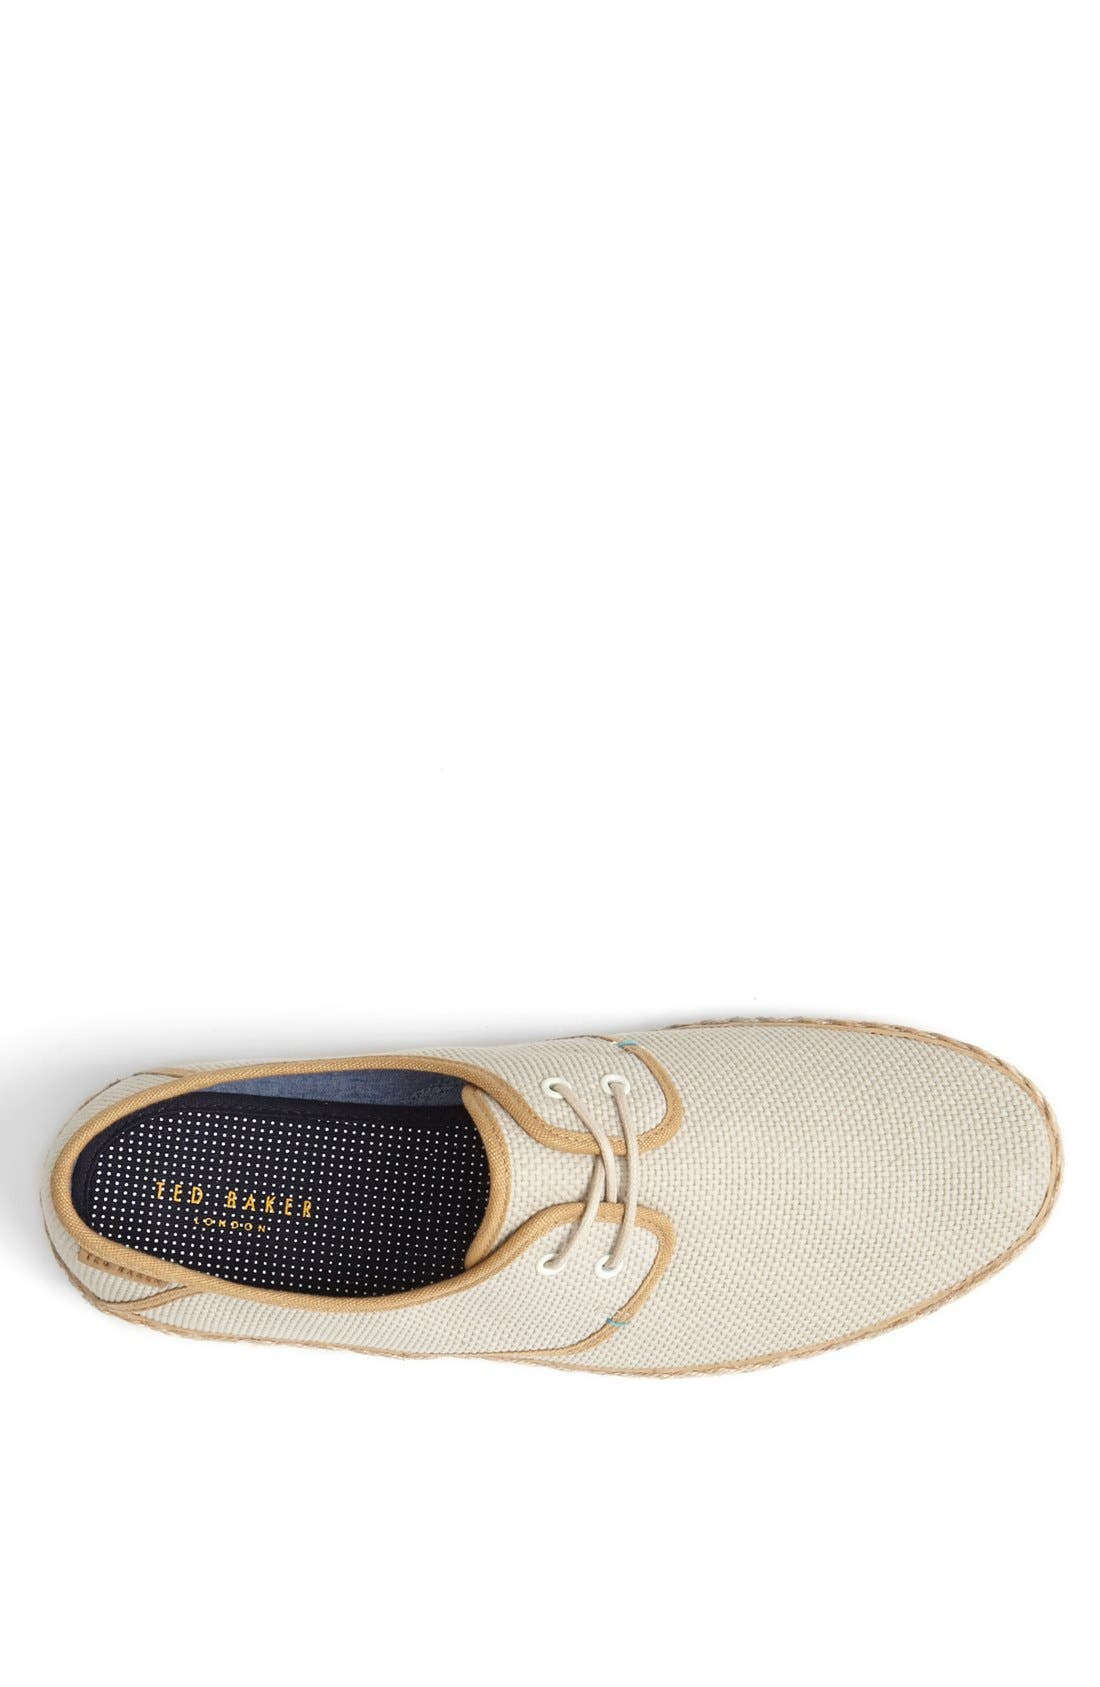 Alternate Image 2  - Ted Baker London 'Drilll 2' Espadrille Sneaker